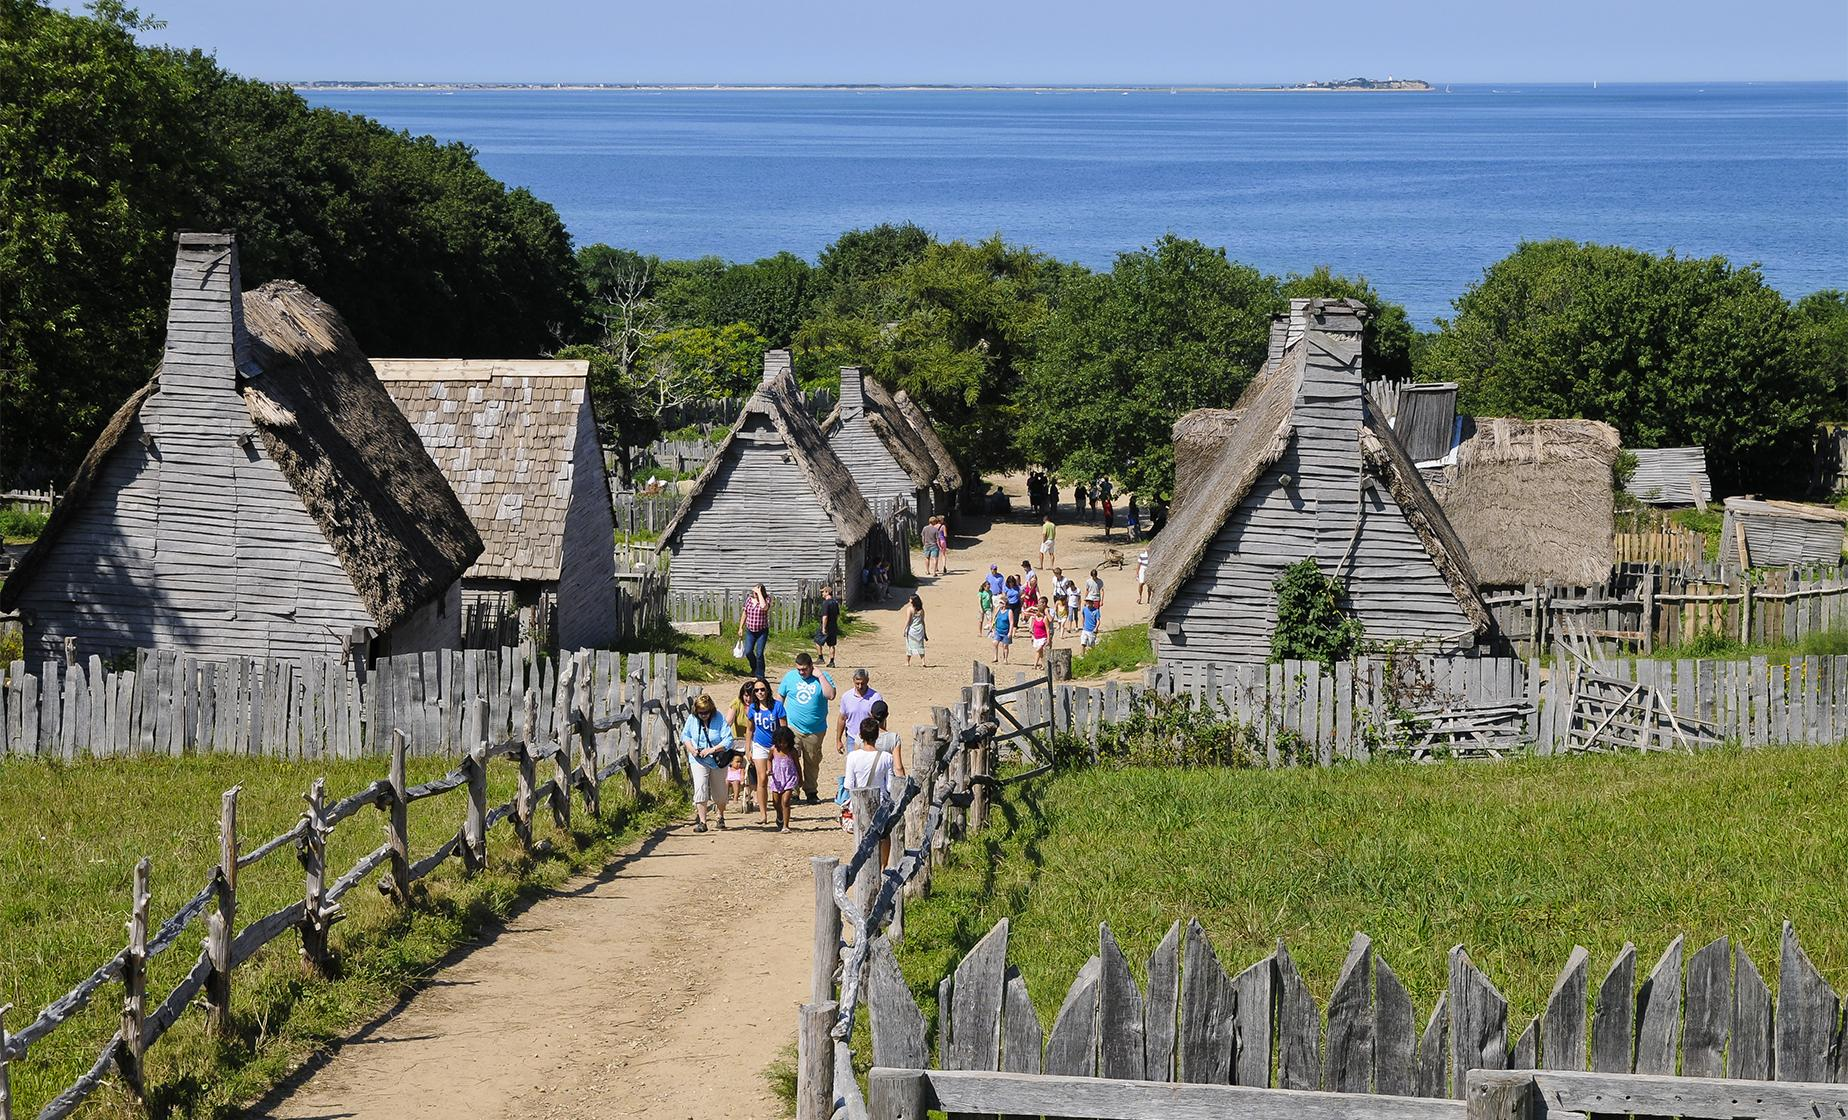 Plimoth Plantation Tour - Boston (Plymouth Rock, Massachusetts Bay Colony)